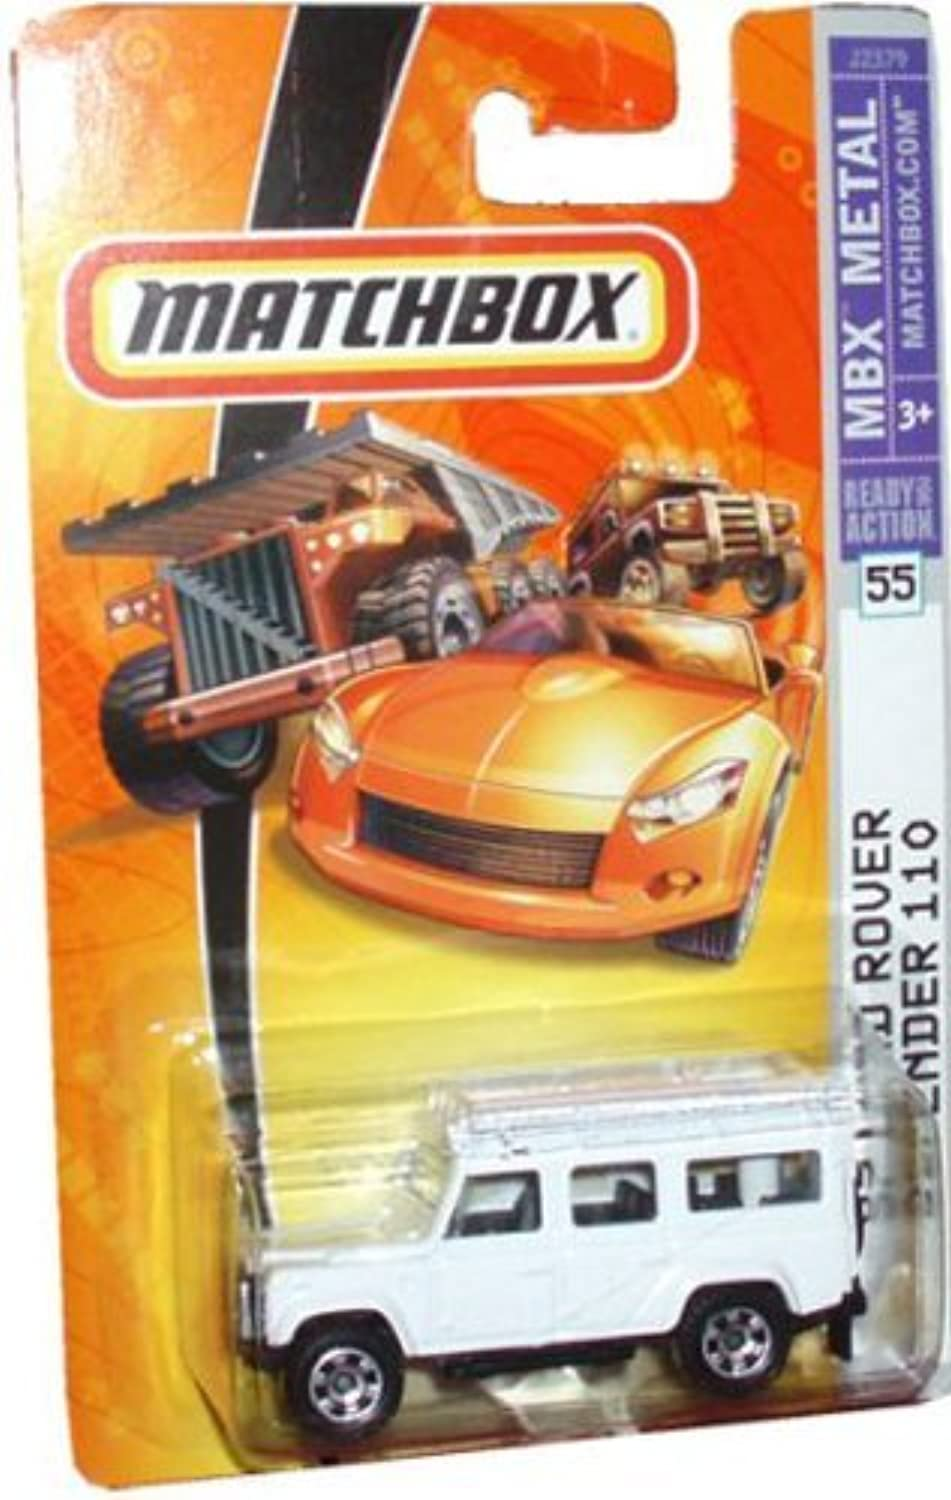 Mattel Matchbox 2006 MBX 1 64 Scale Die Cast Metal Car   55 - White 4 Wheel Drive Off-Road Sport Utility Vehicle 1997 Land Rover Defender 110 by Matchbox